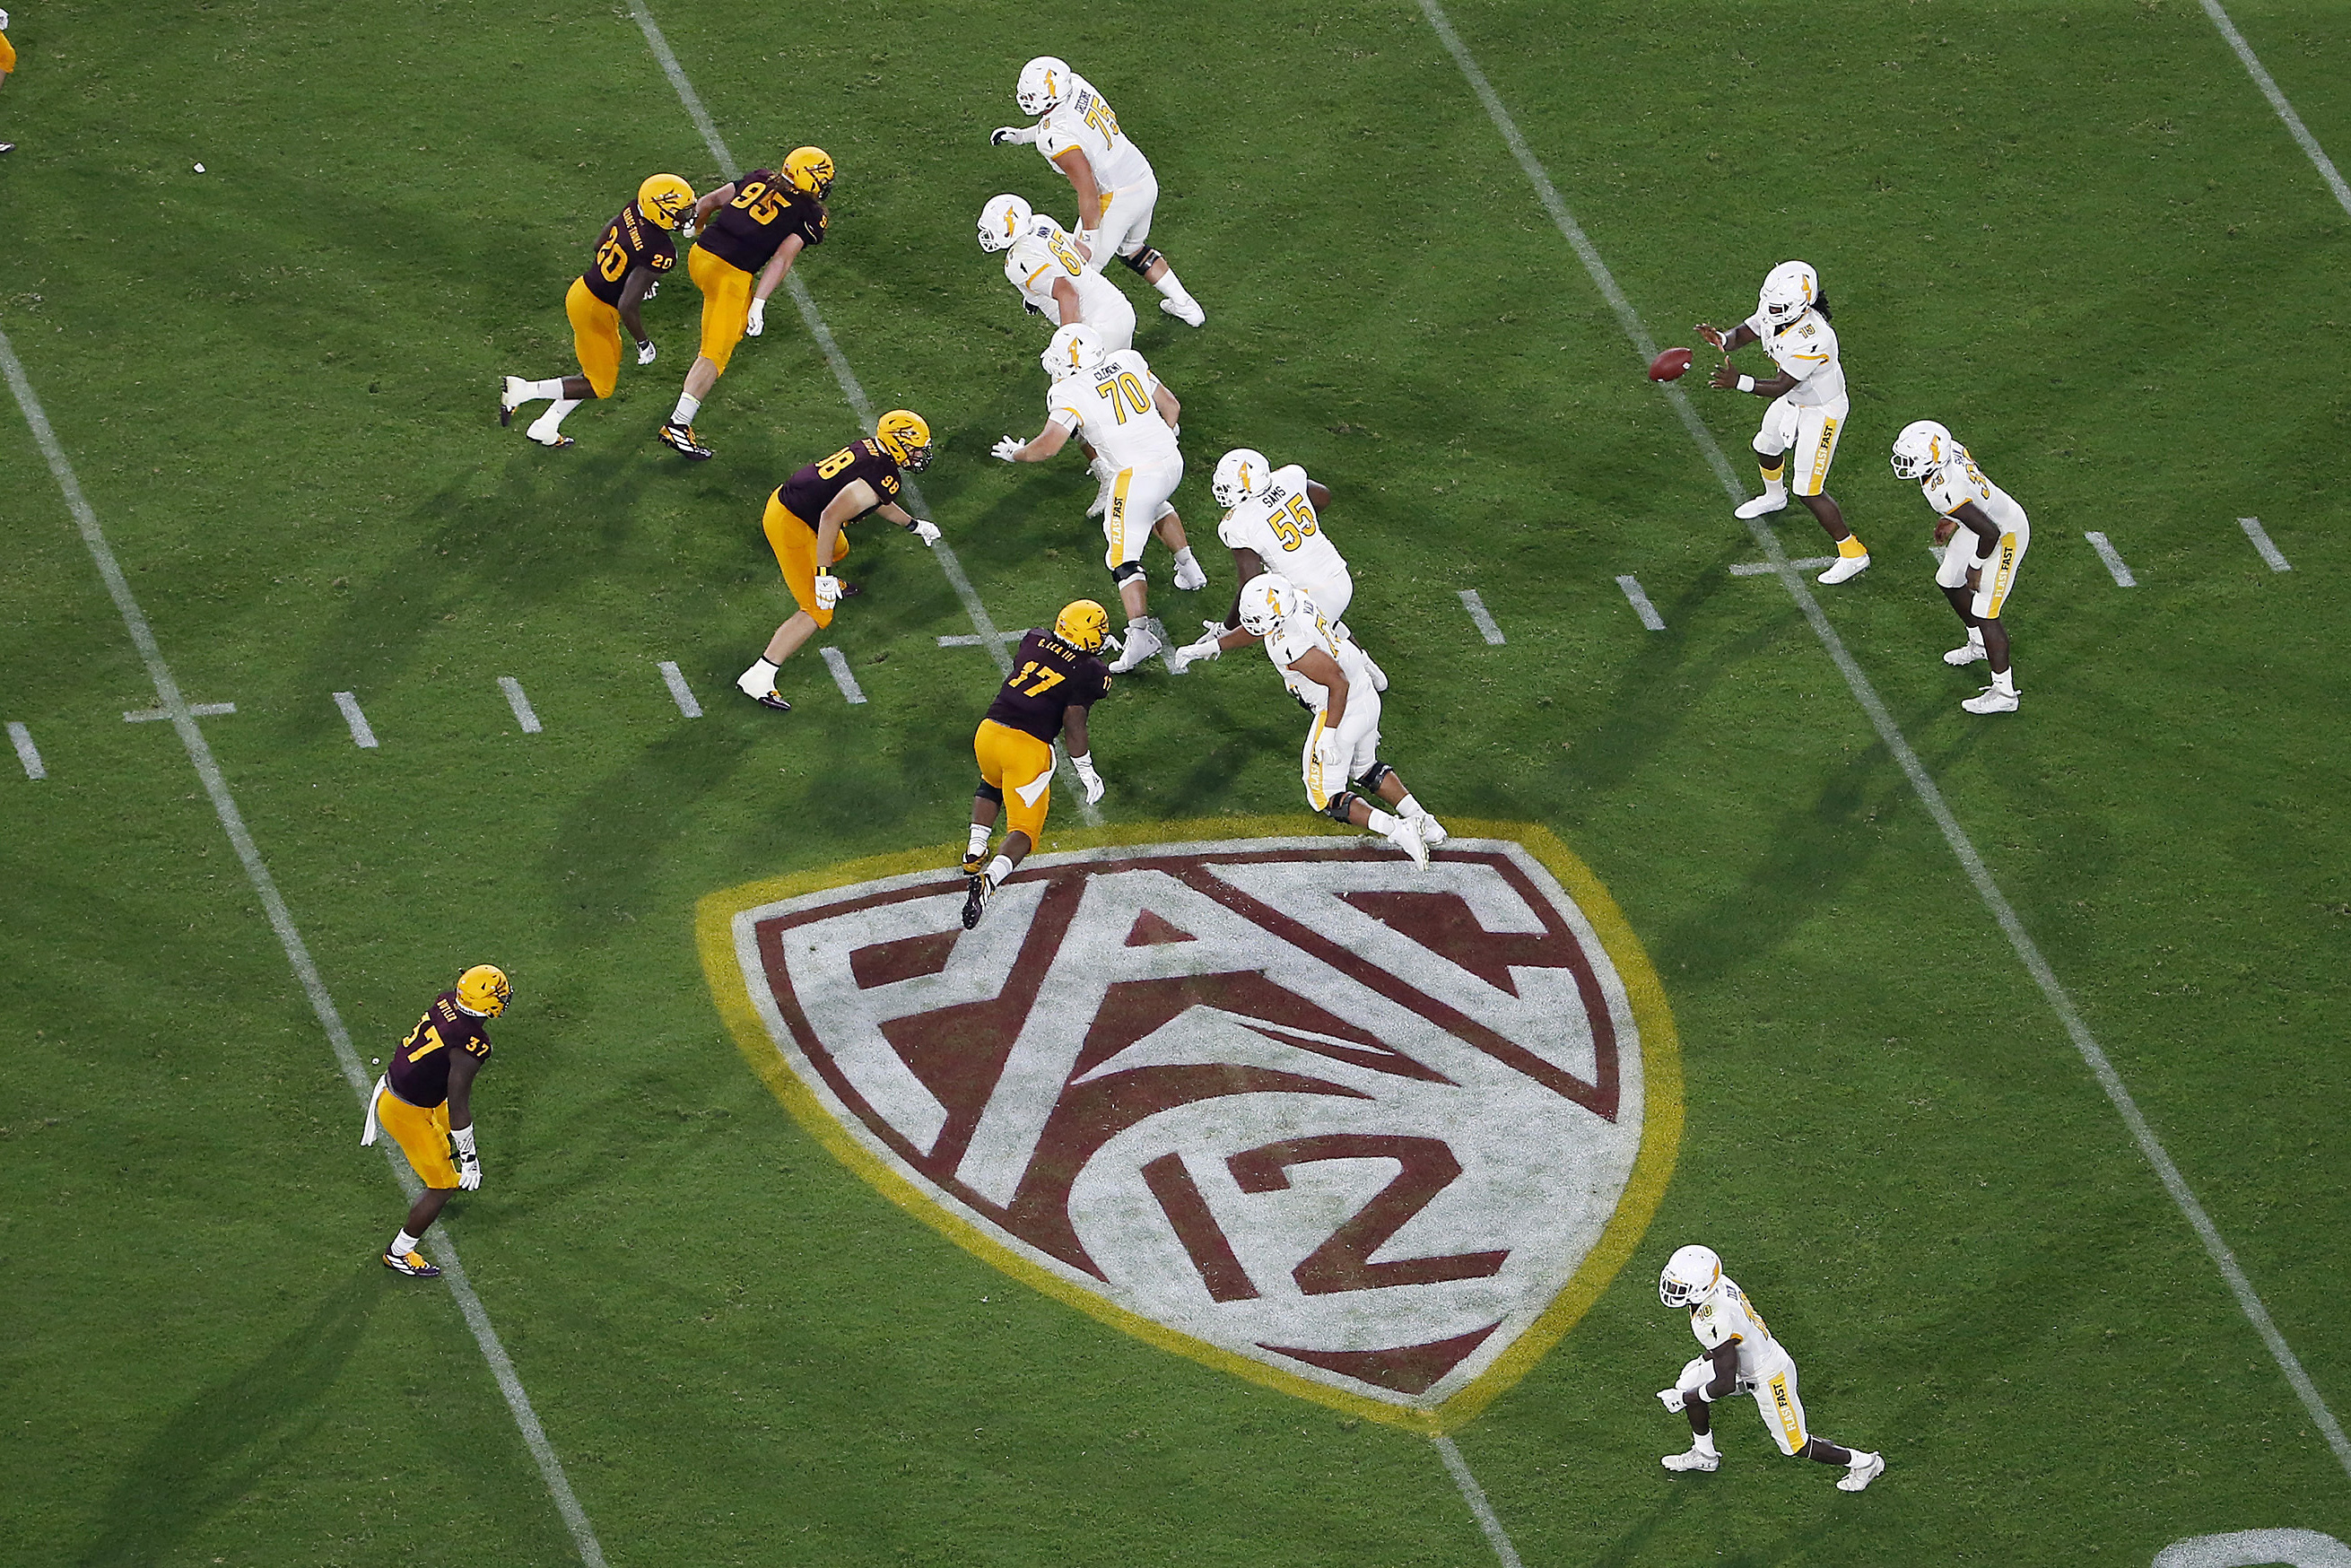 Arizona State and Kent State play in Tempe, Ariz.  on Aug. 29, 2019. George Kliavkoff is the new commissioner of the Pac-12.